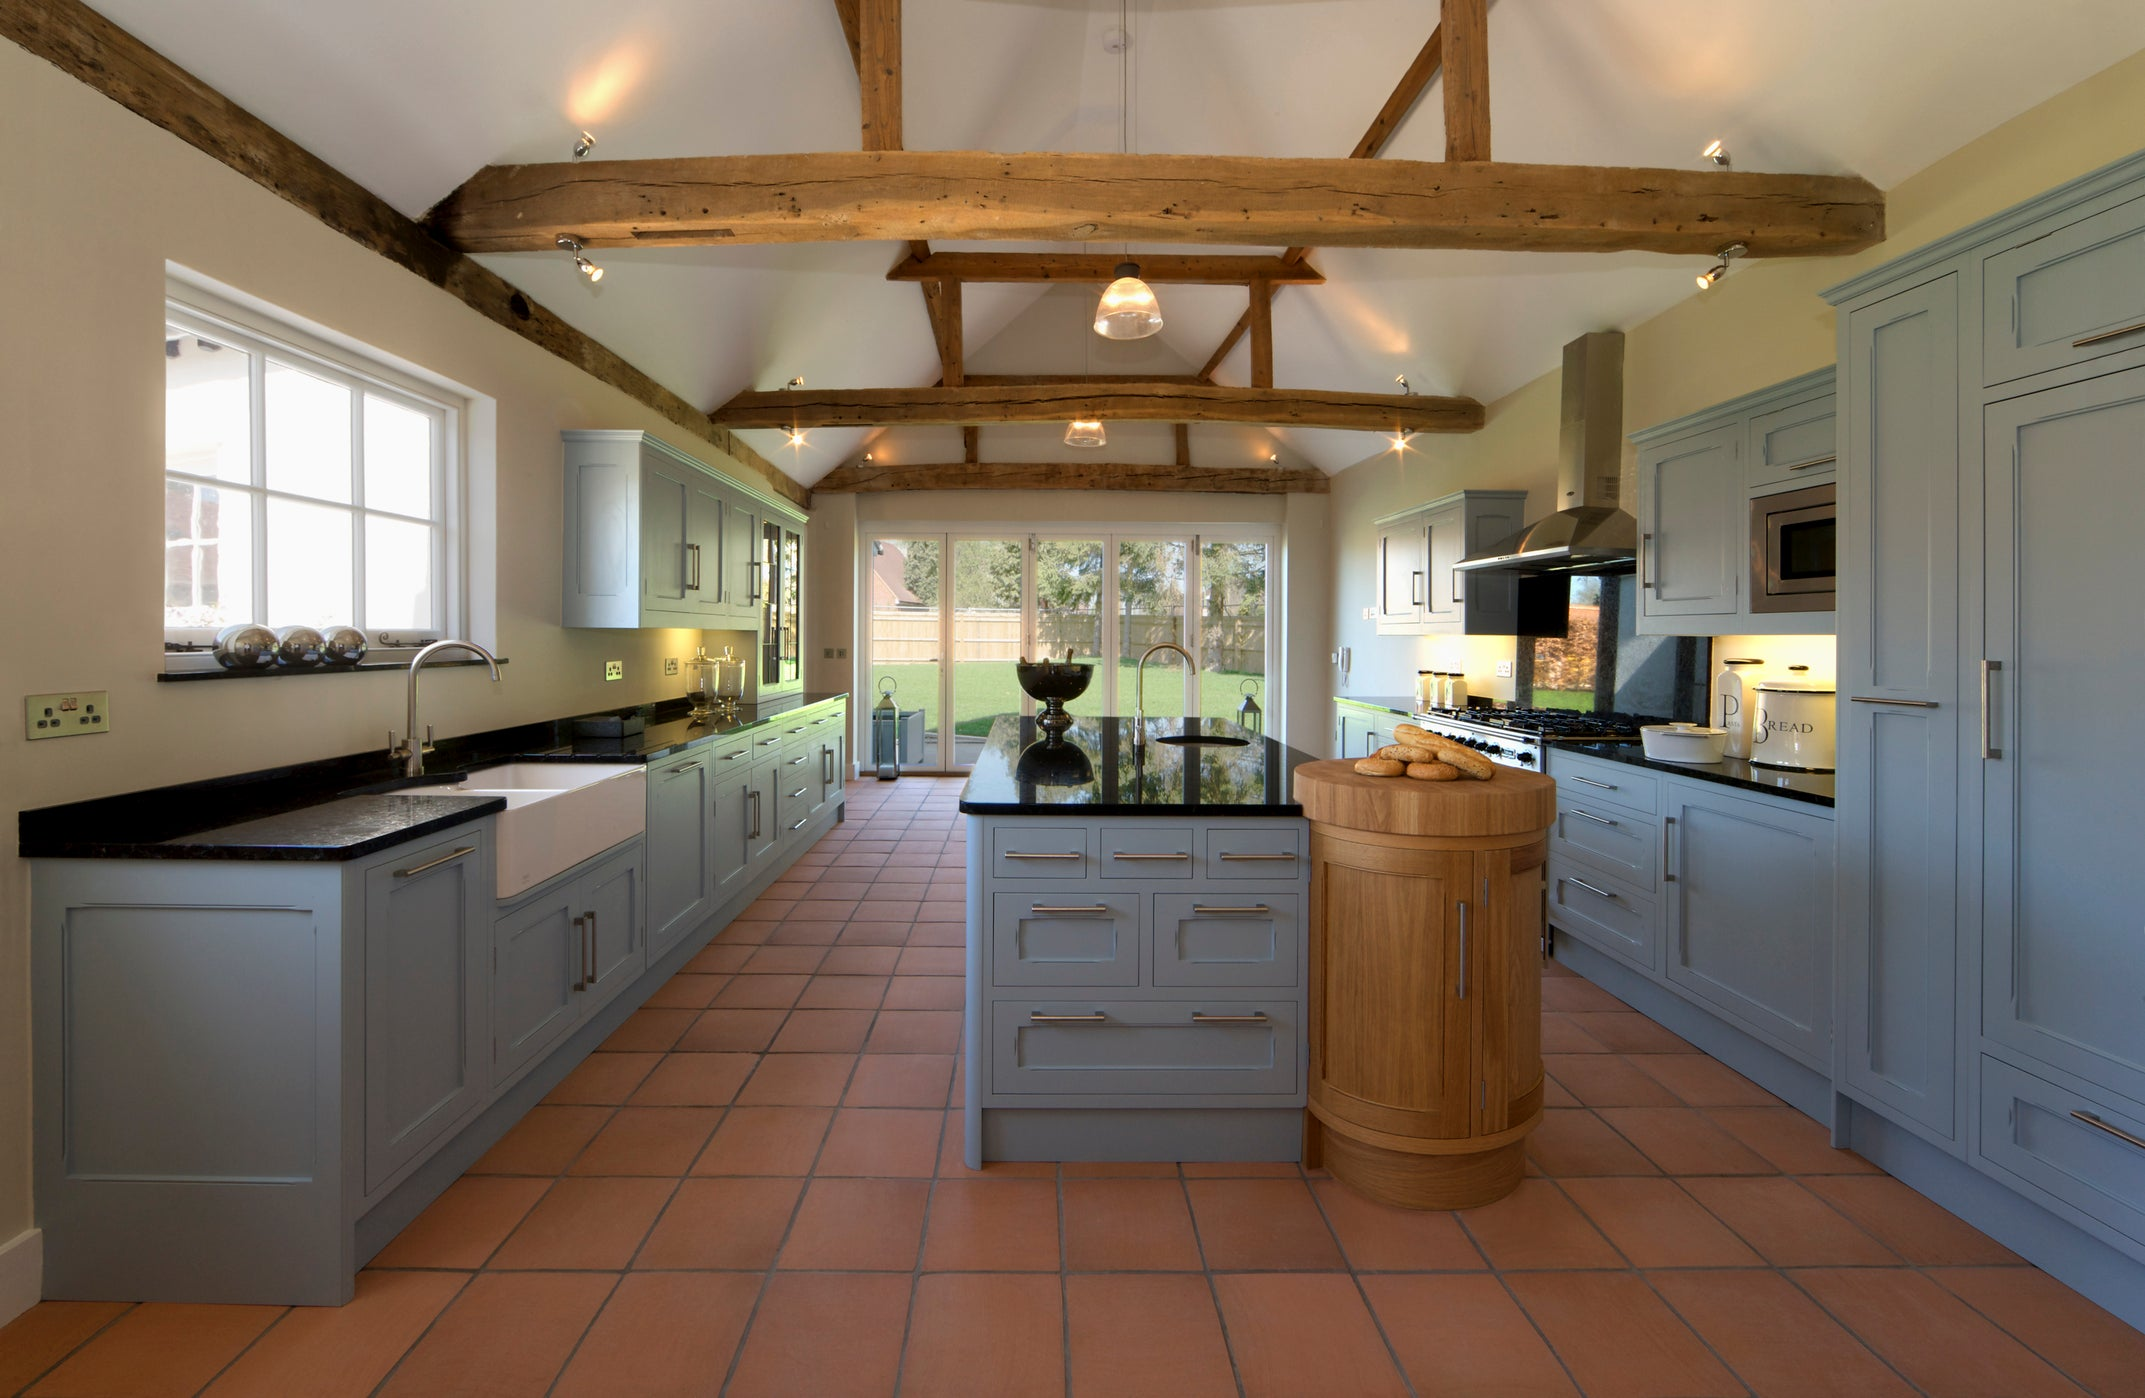 Grey kitchen units, cream walls and traditional ceramic floor tiles